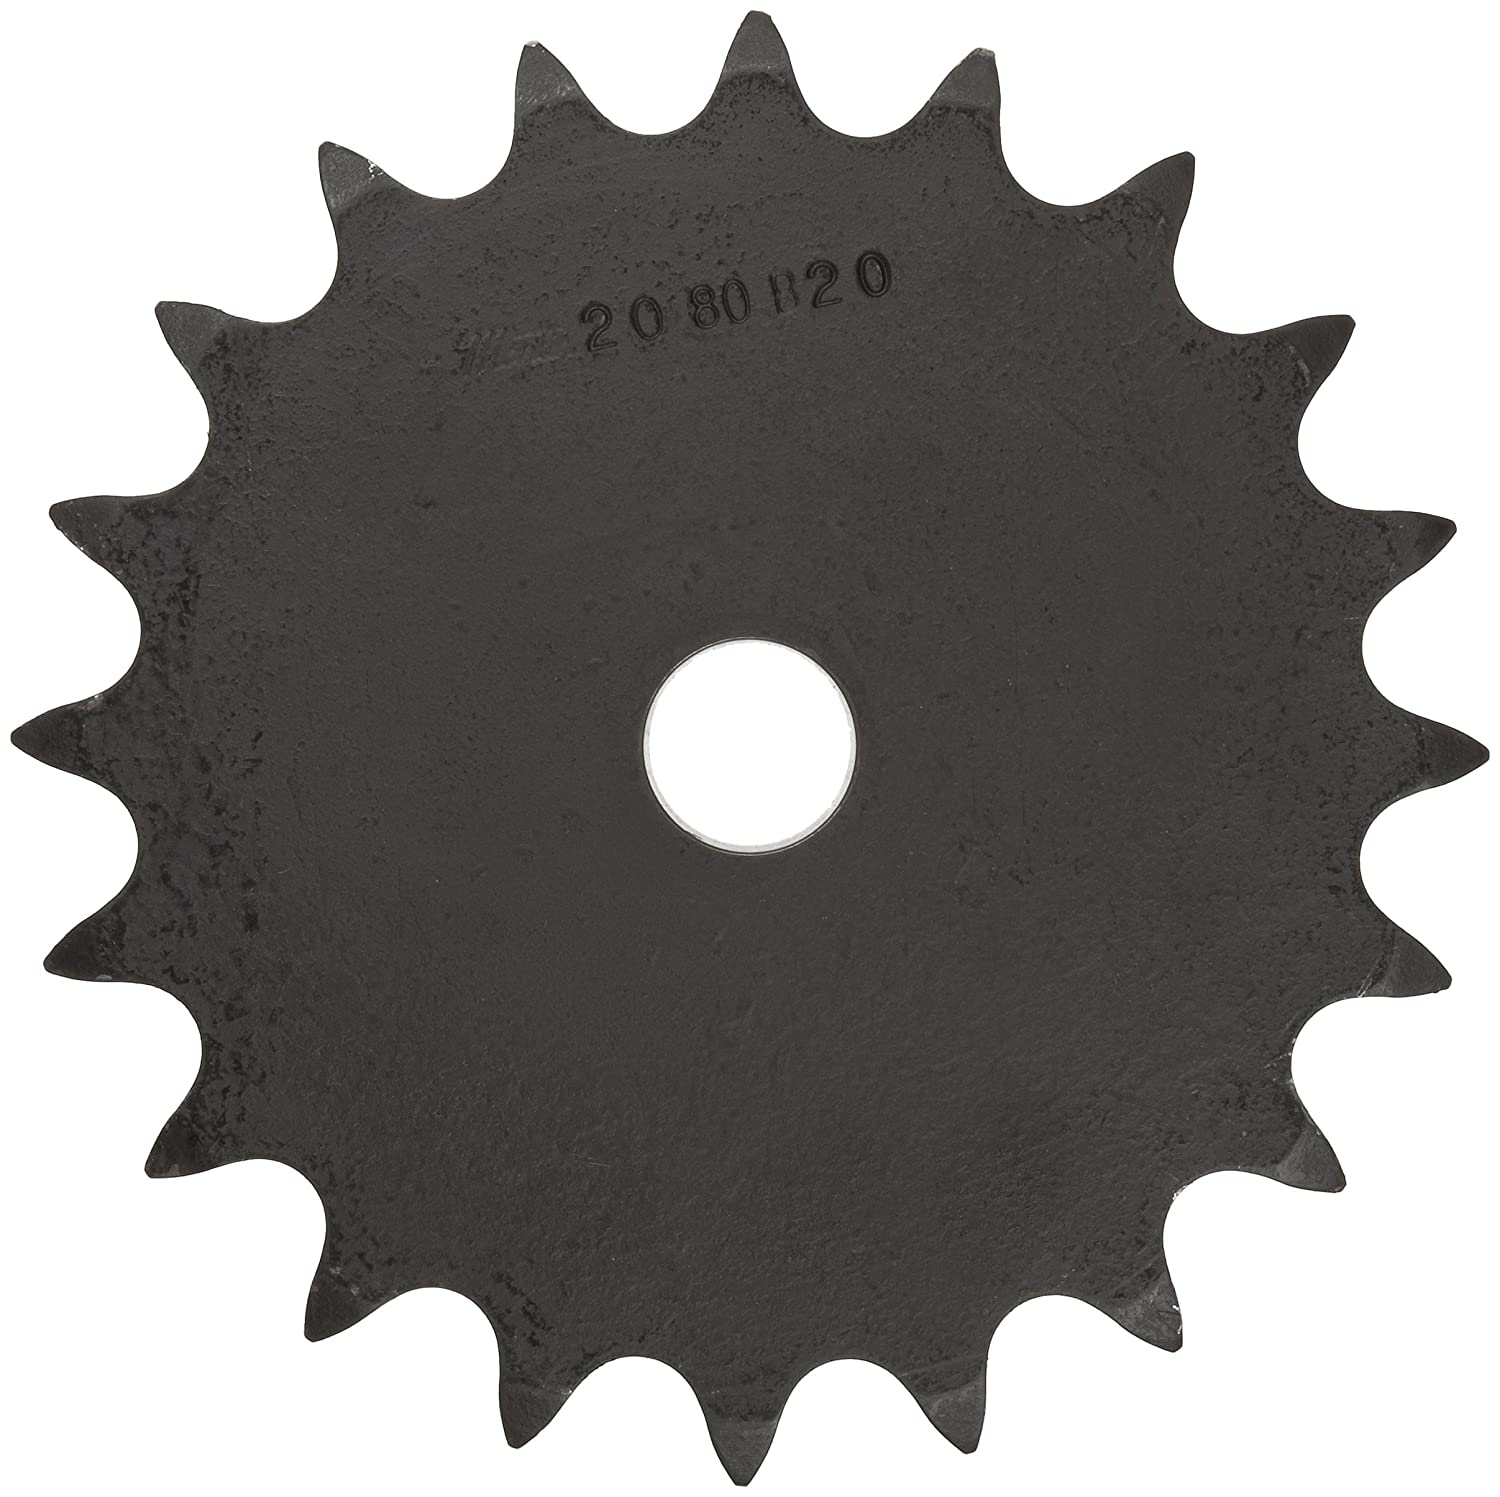 2 Pitch Double Pitch Strand Type B Hub 6.59 OD 4.25 Hub Dia. Reboreable 0.575 Width 2080//C2080 Chain Size 19 Teeth 1 Bore Dia. Martin Roller Chain Sprocket